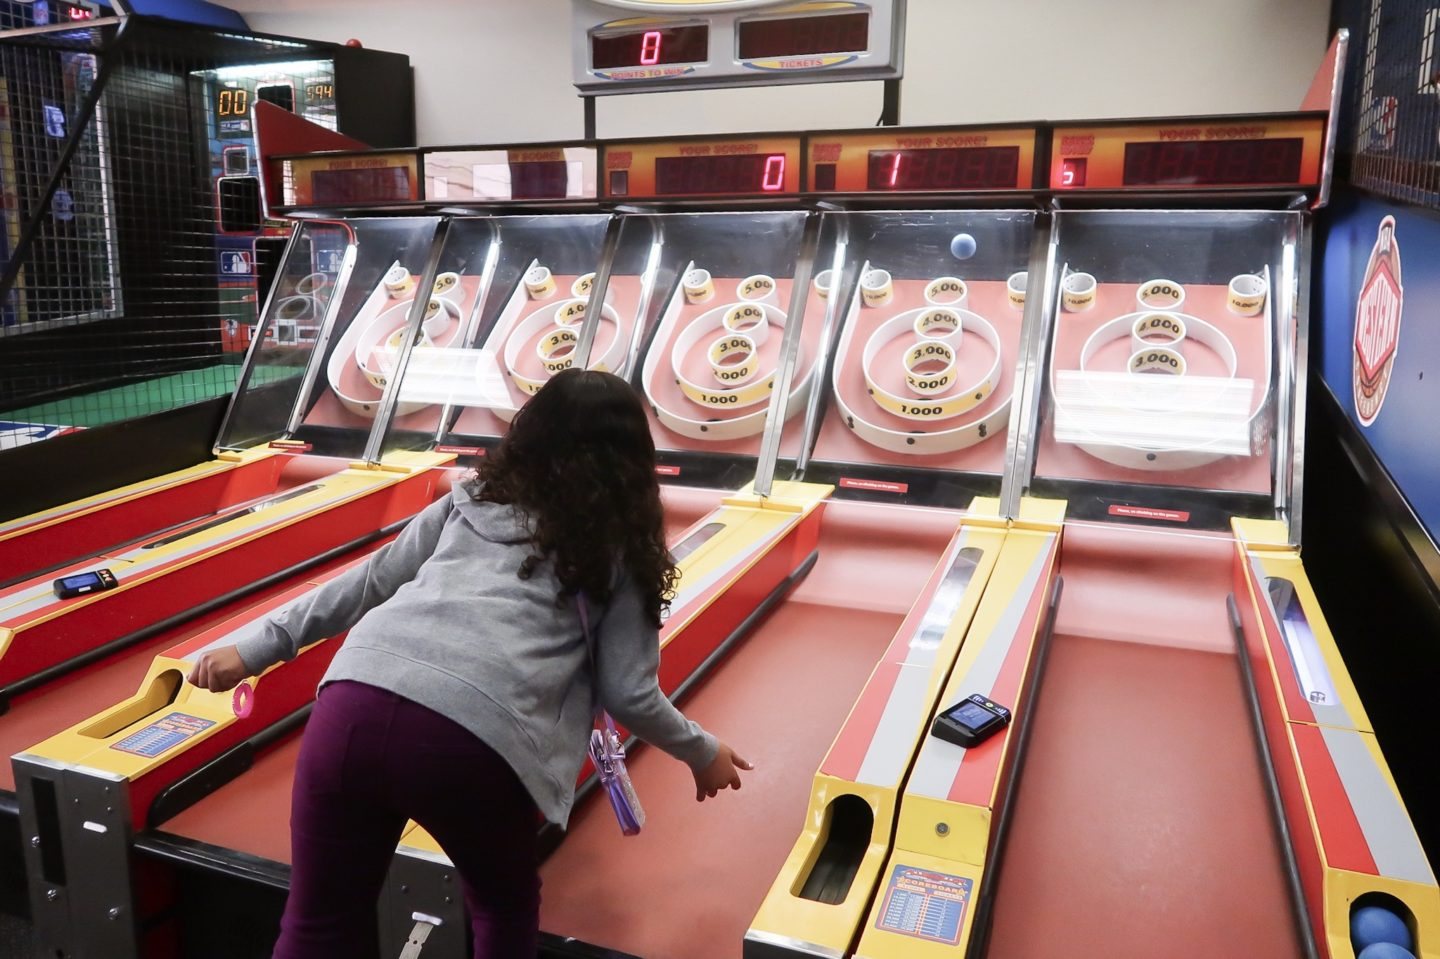 Chuck E. Cheese's All You Can Play Challenge is a Win-Win!